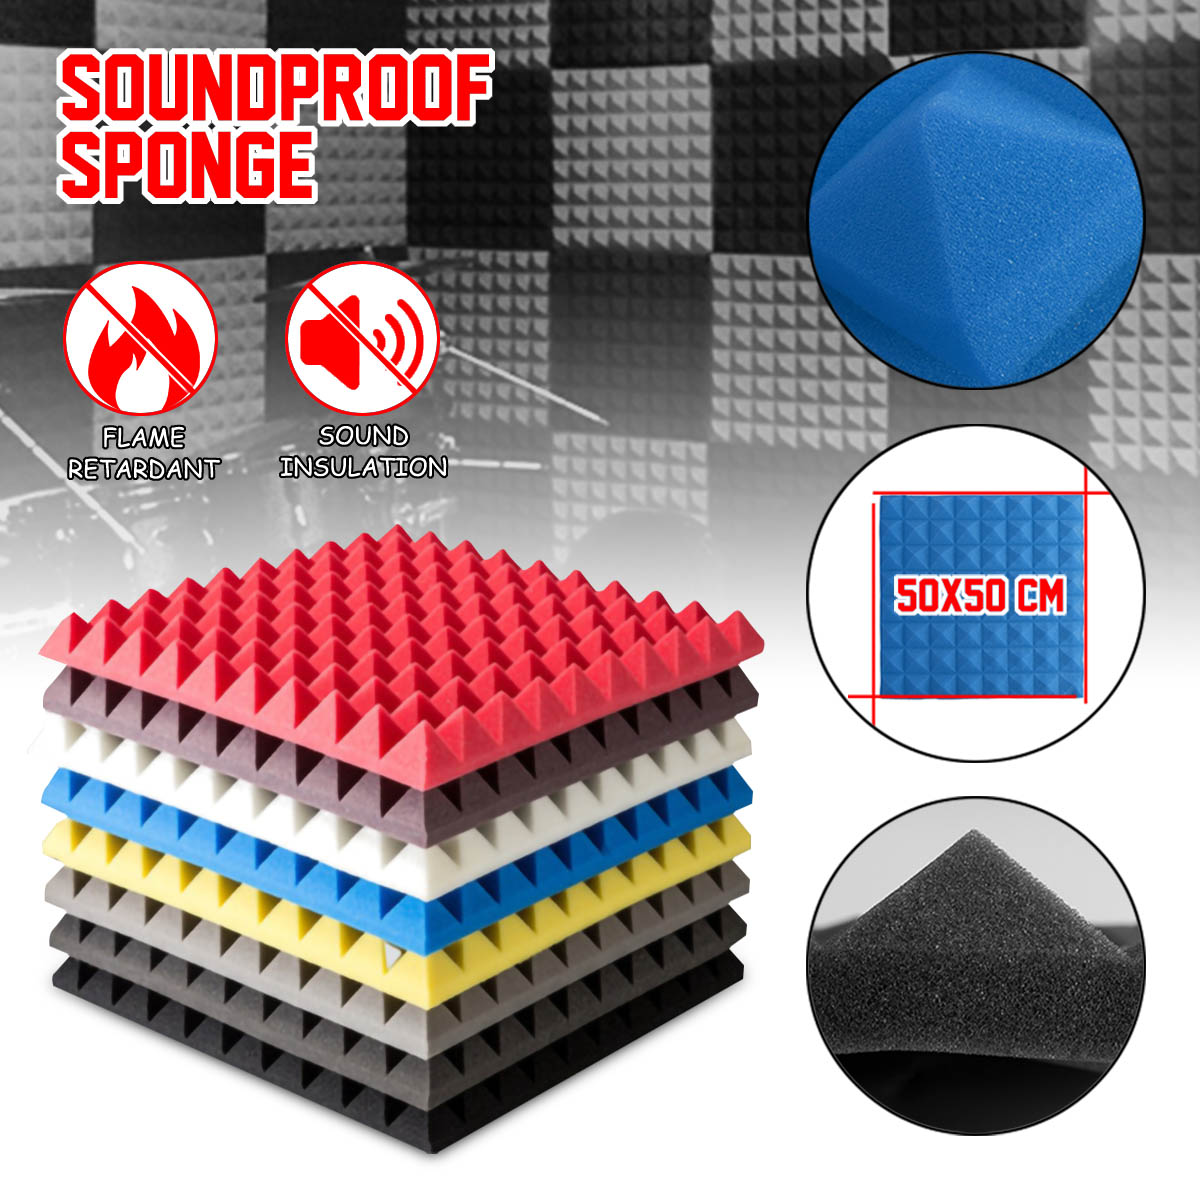 6PCS Soundproofing Foam Acoustic Foam Sound Treatment Absorption Wedge Tiles Polyurethane Foam 500x500mm Noise Sponge